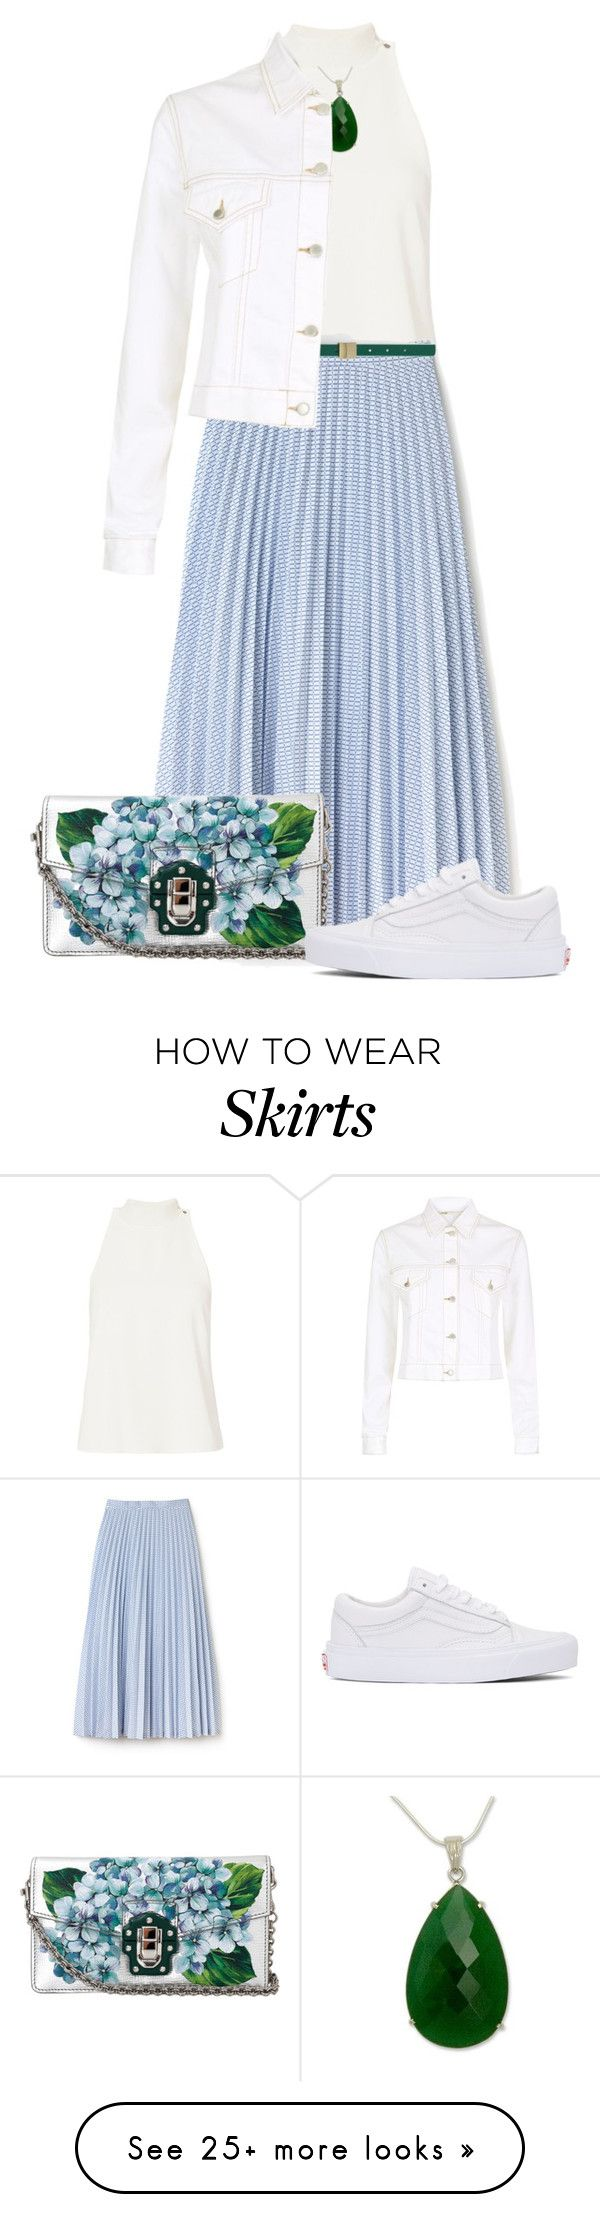 """Untitled #1978"" by ebramos on Polyvore featuring A.L.C., Lacoste, Dolce&Gabbana, NOVICA, Maje and Vans"